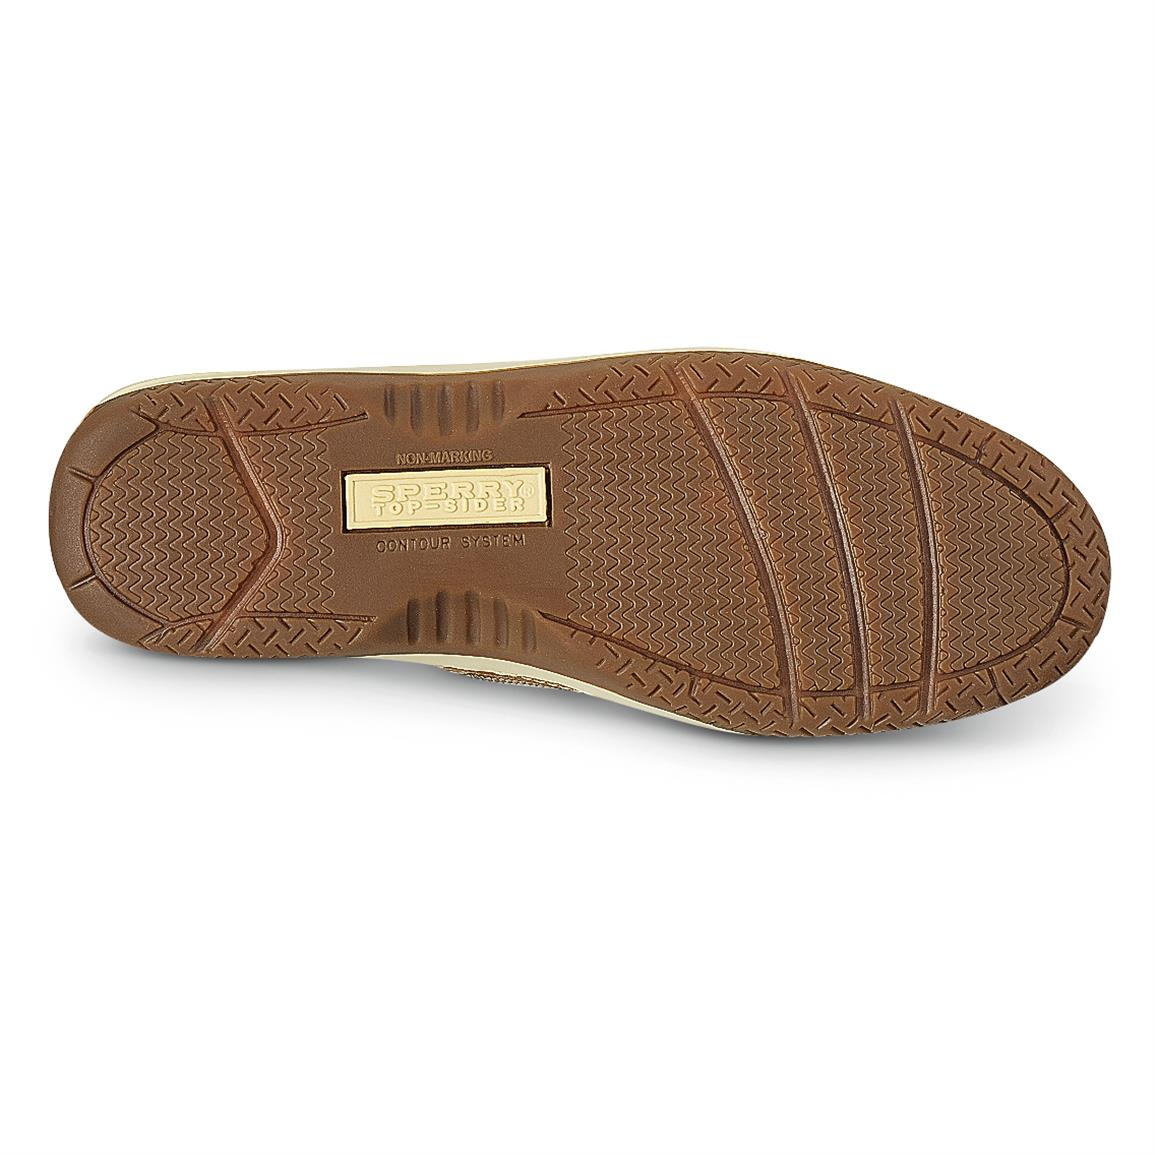 Non-marking rubber outsole with razor-cut wave siping for great wet / dry traction